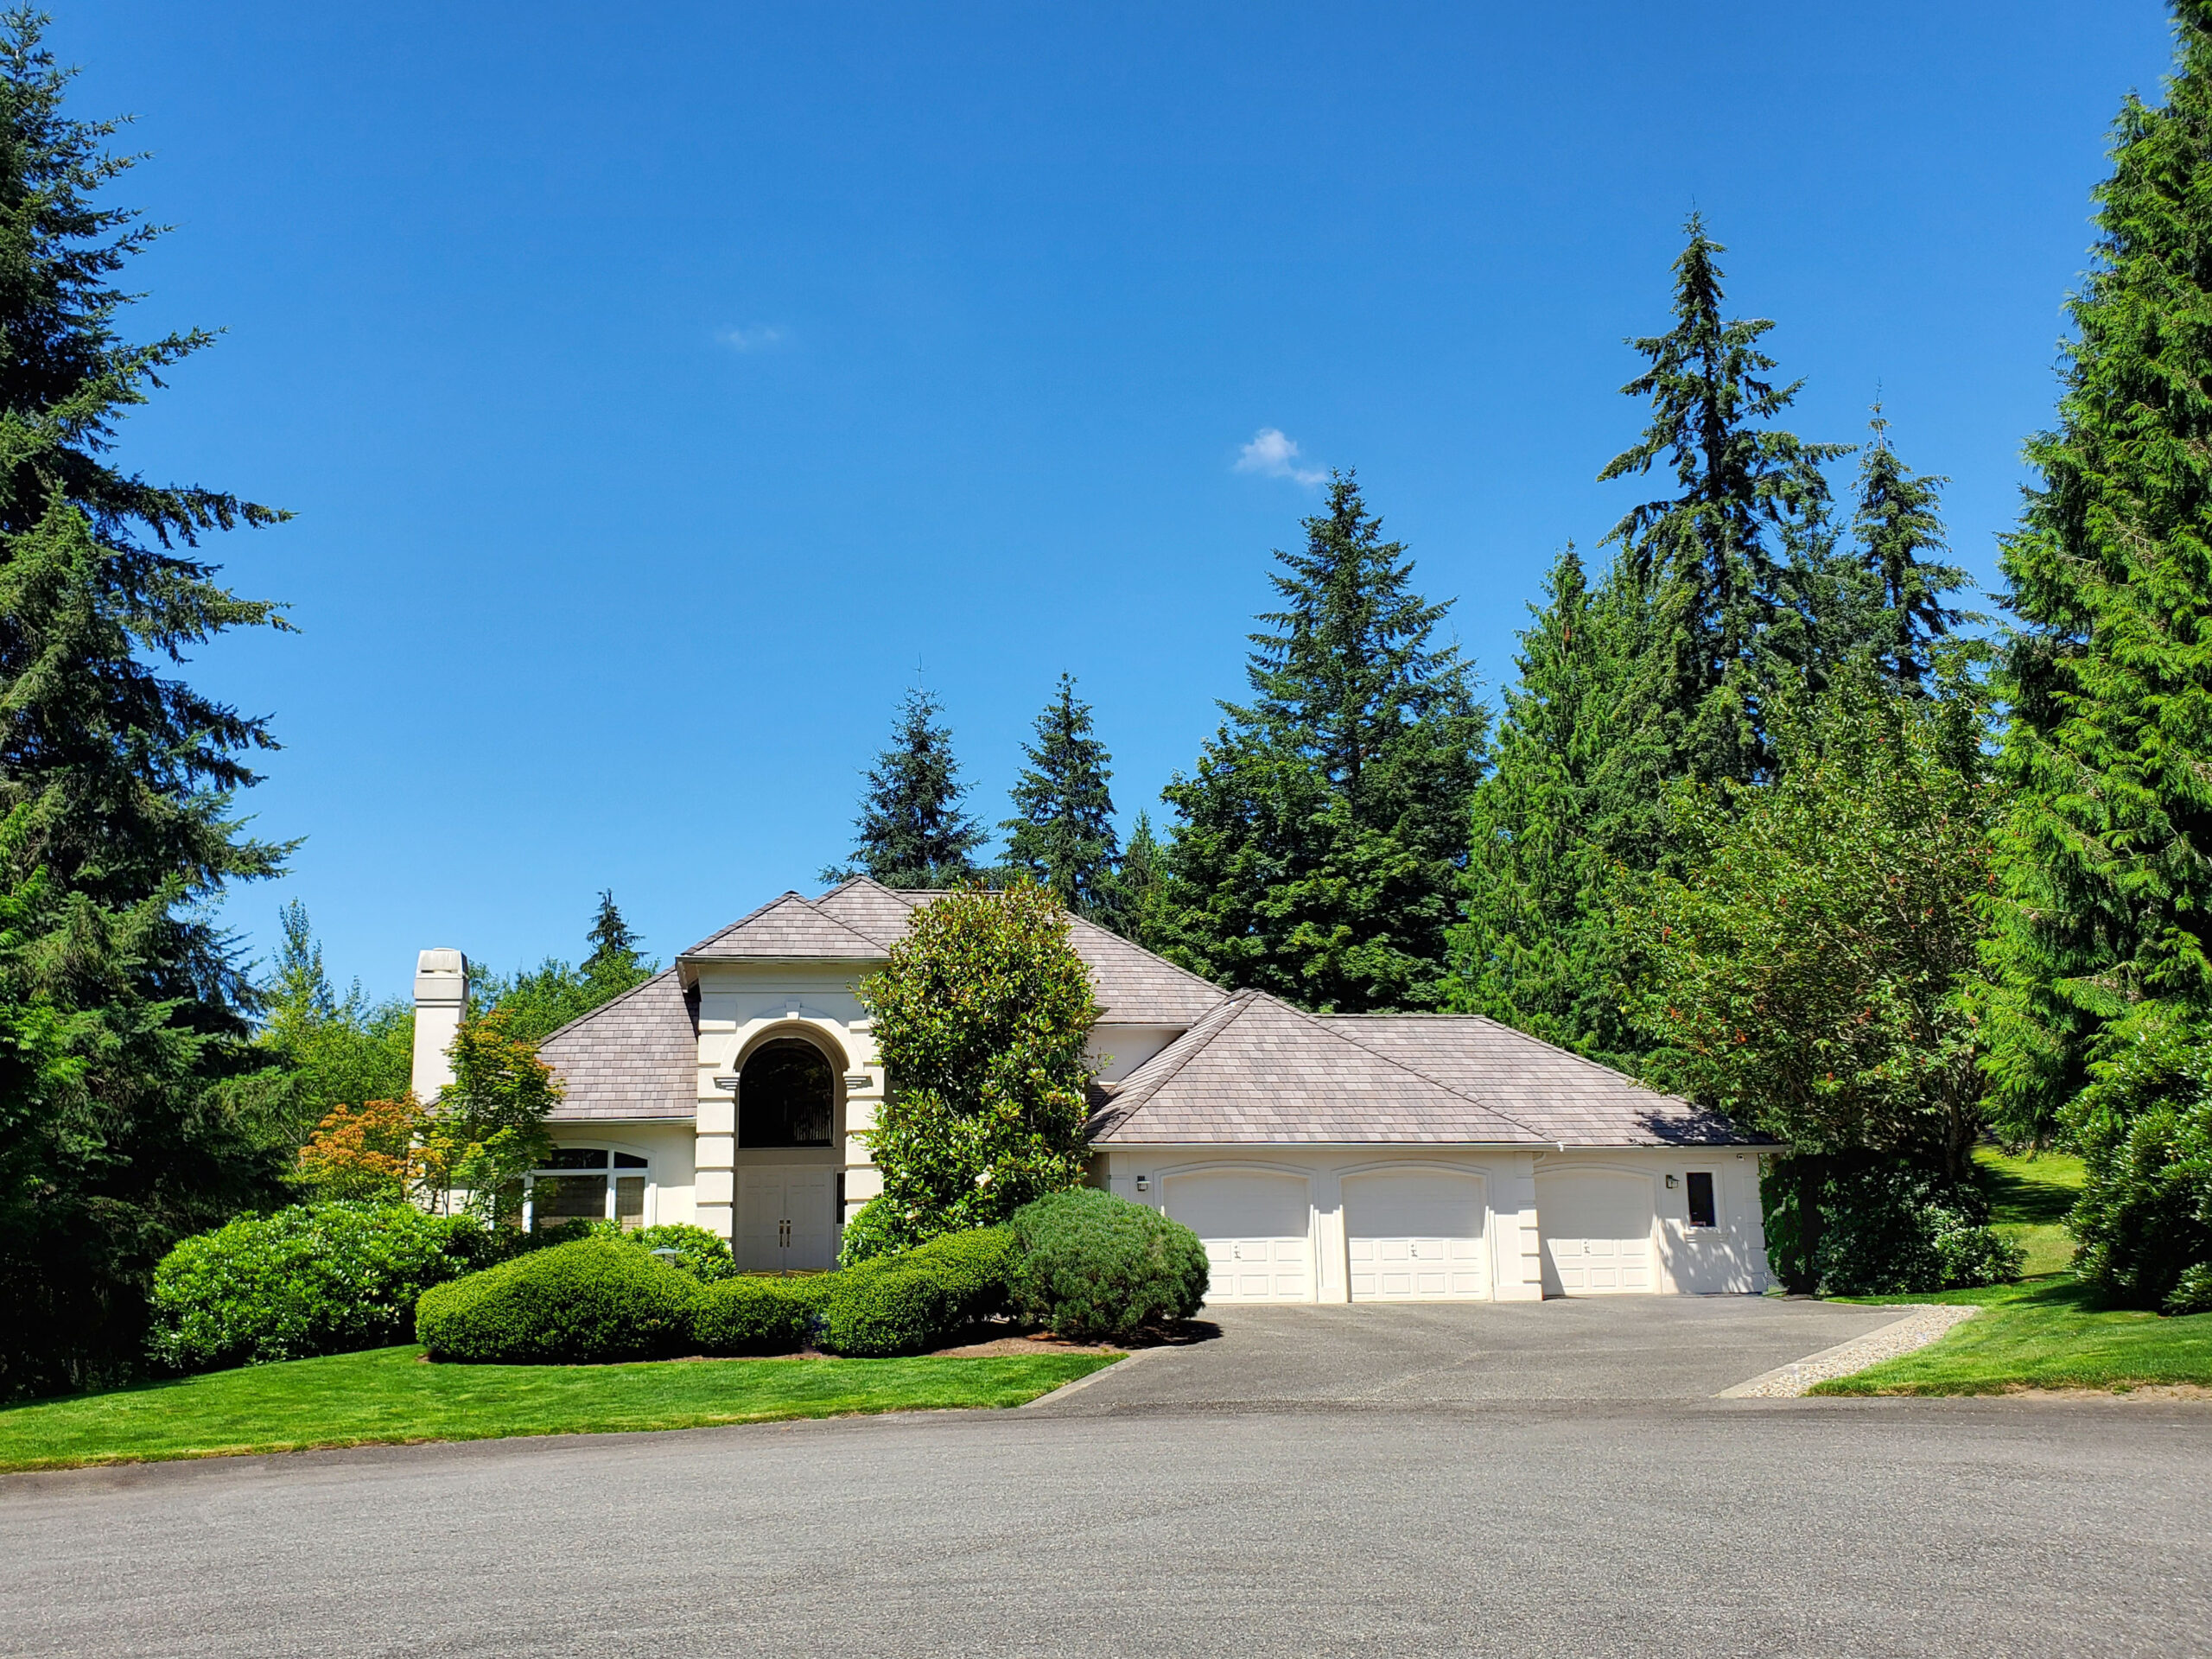 DaVinci Roofscapes MultiWidth Shingles in Tahoe color, installed in Redmond WA